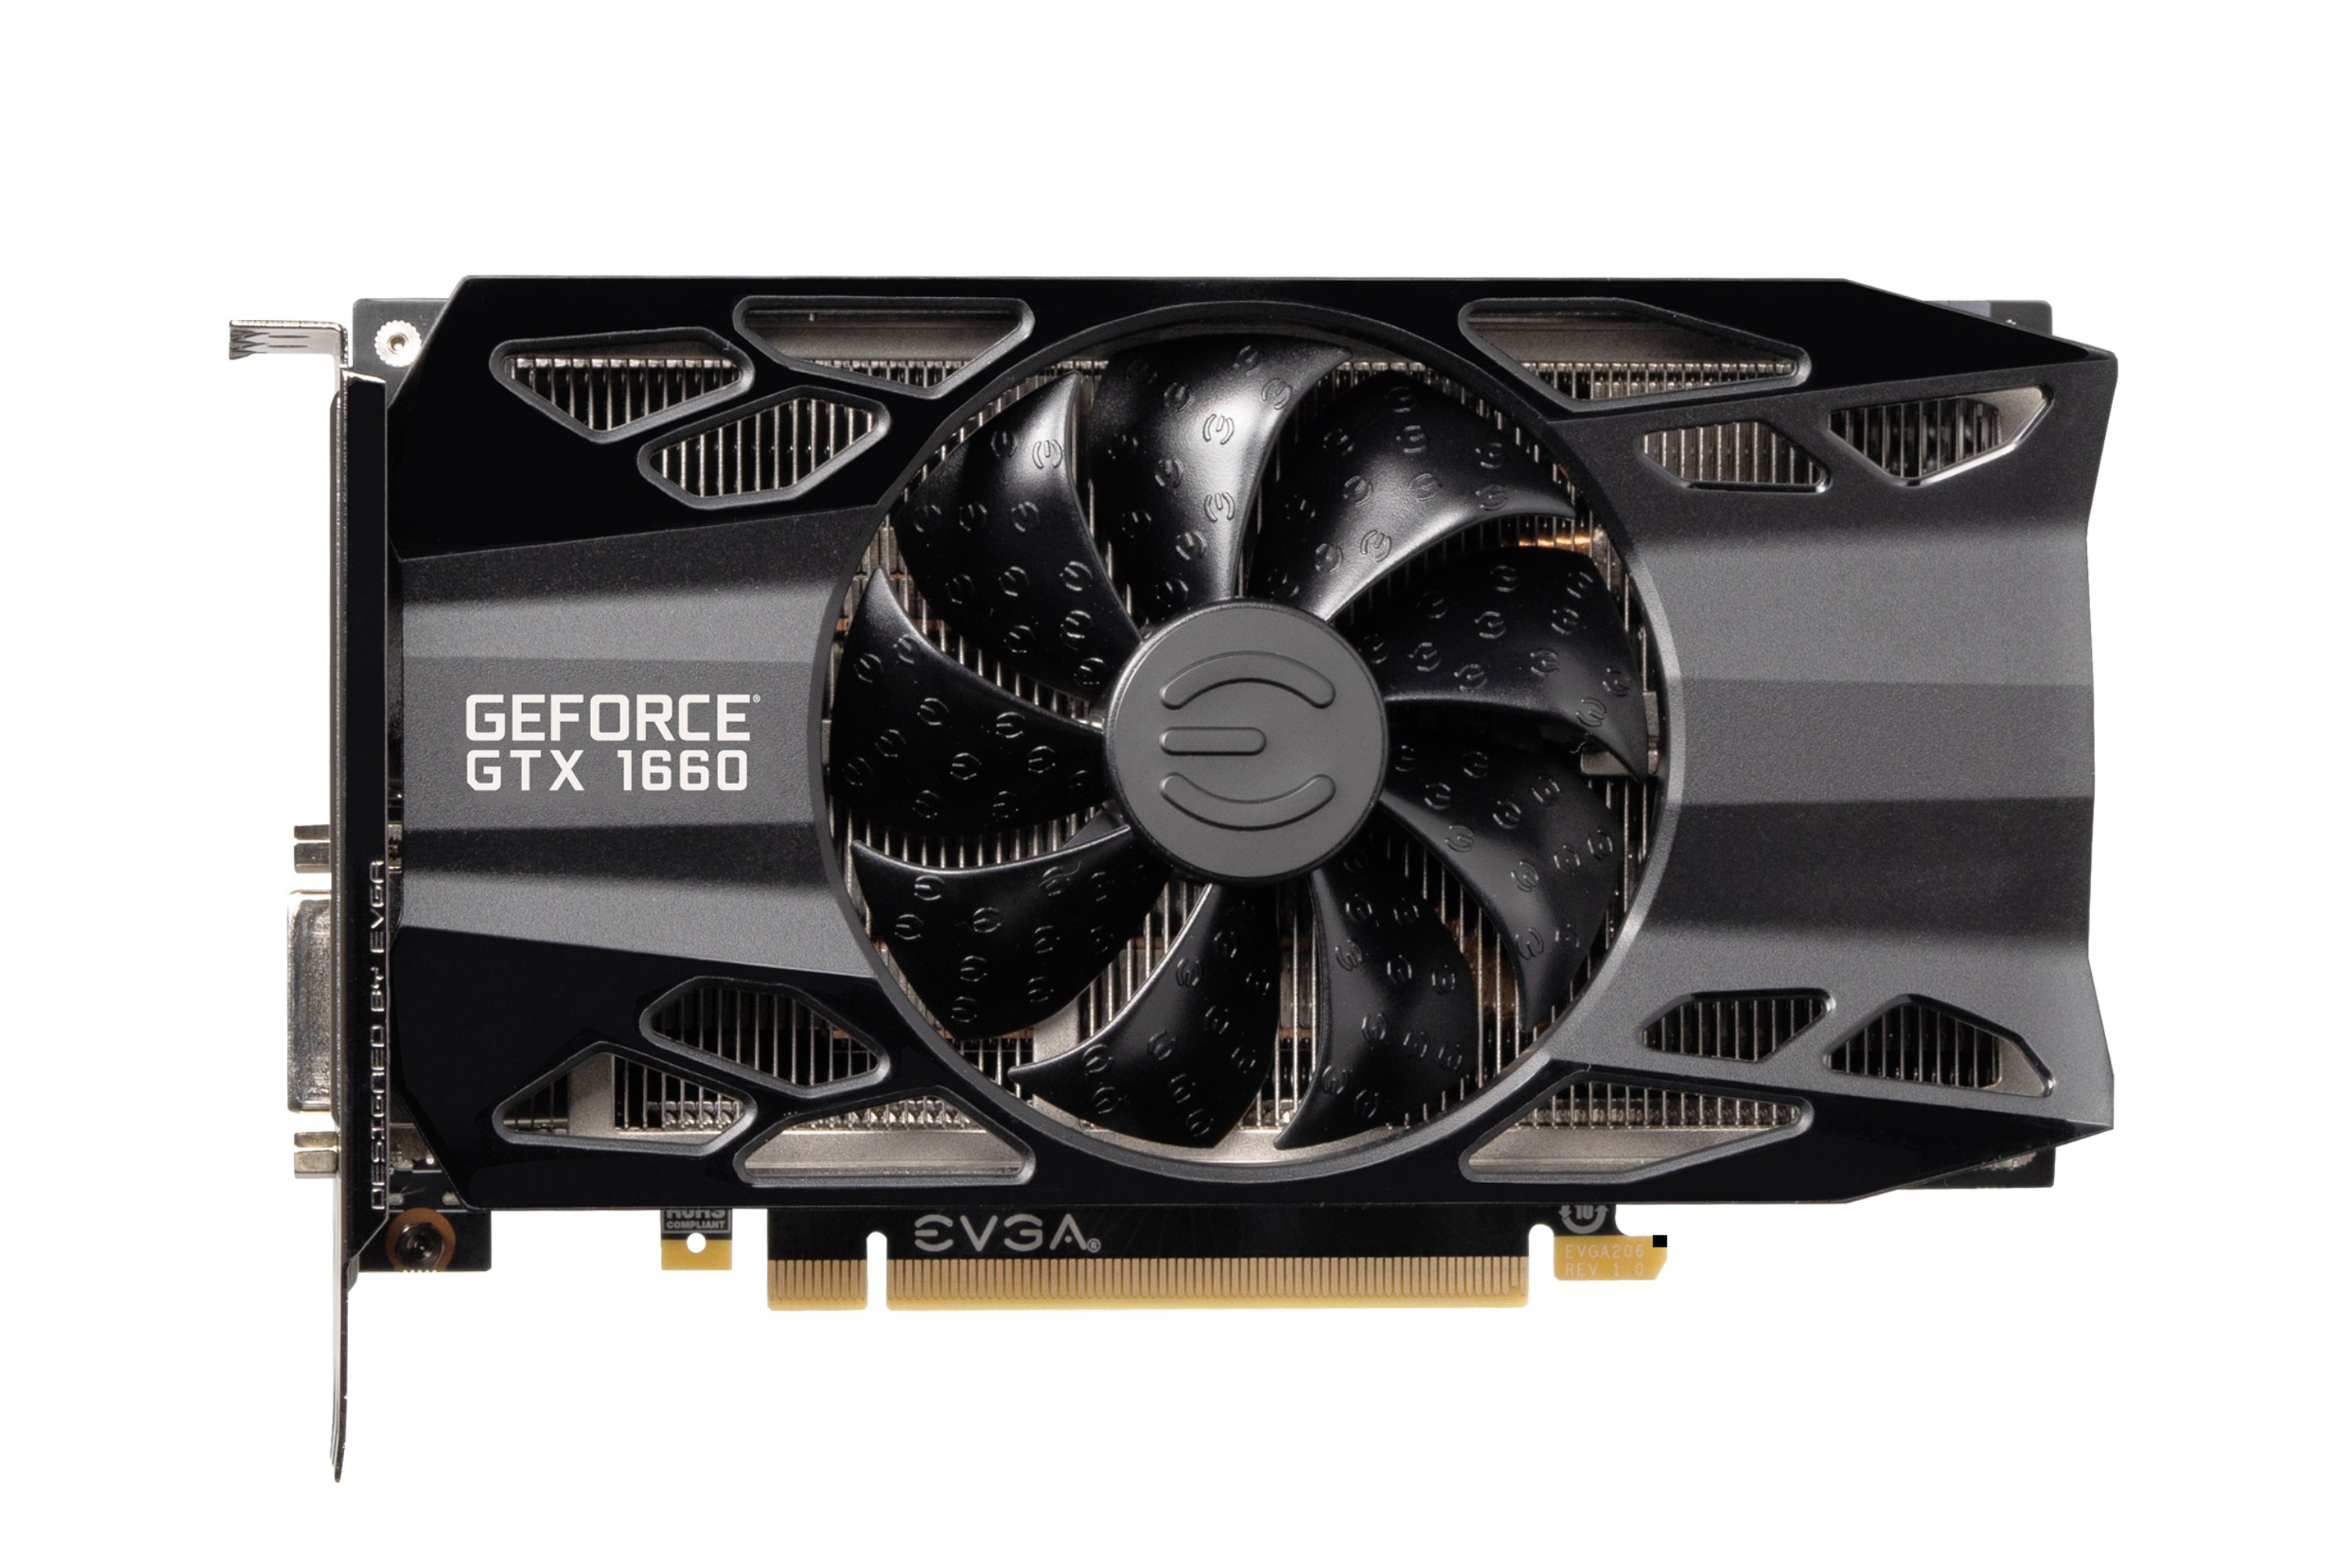 Nvidia's GTX 1660 is an affordable GPU that's better than the GTX